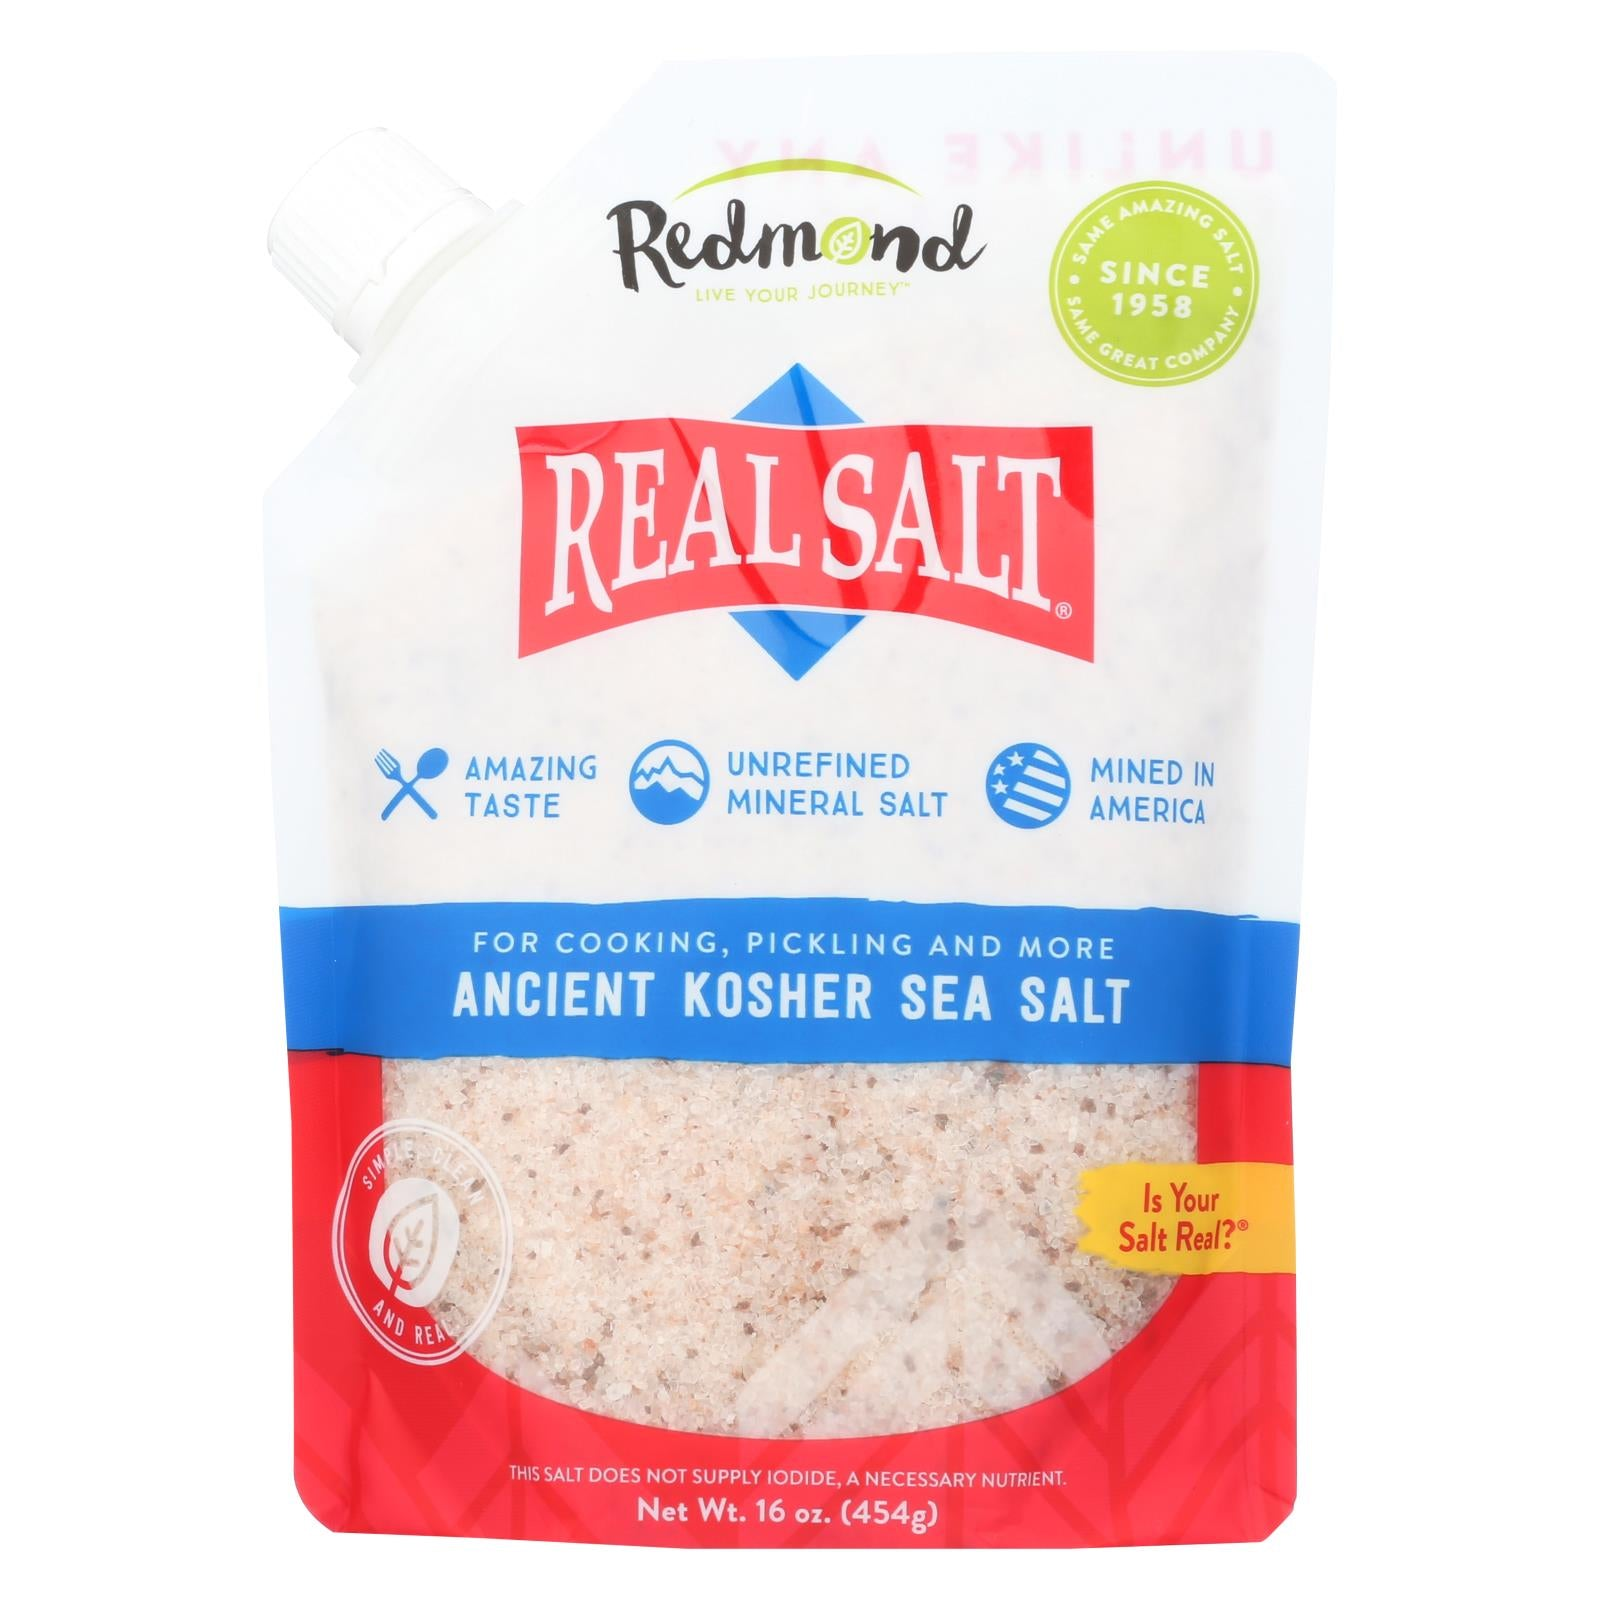 Buy Real Salt Kosher Sea Salt Pouch - 16 oz - Salt, Spices and Seasonings from Veroeco.com